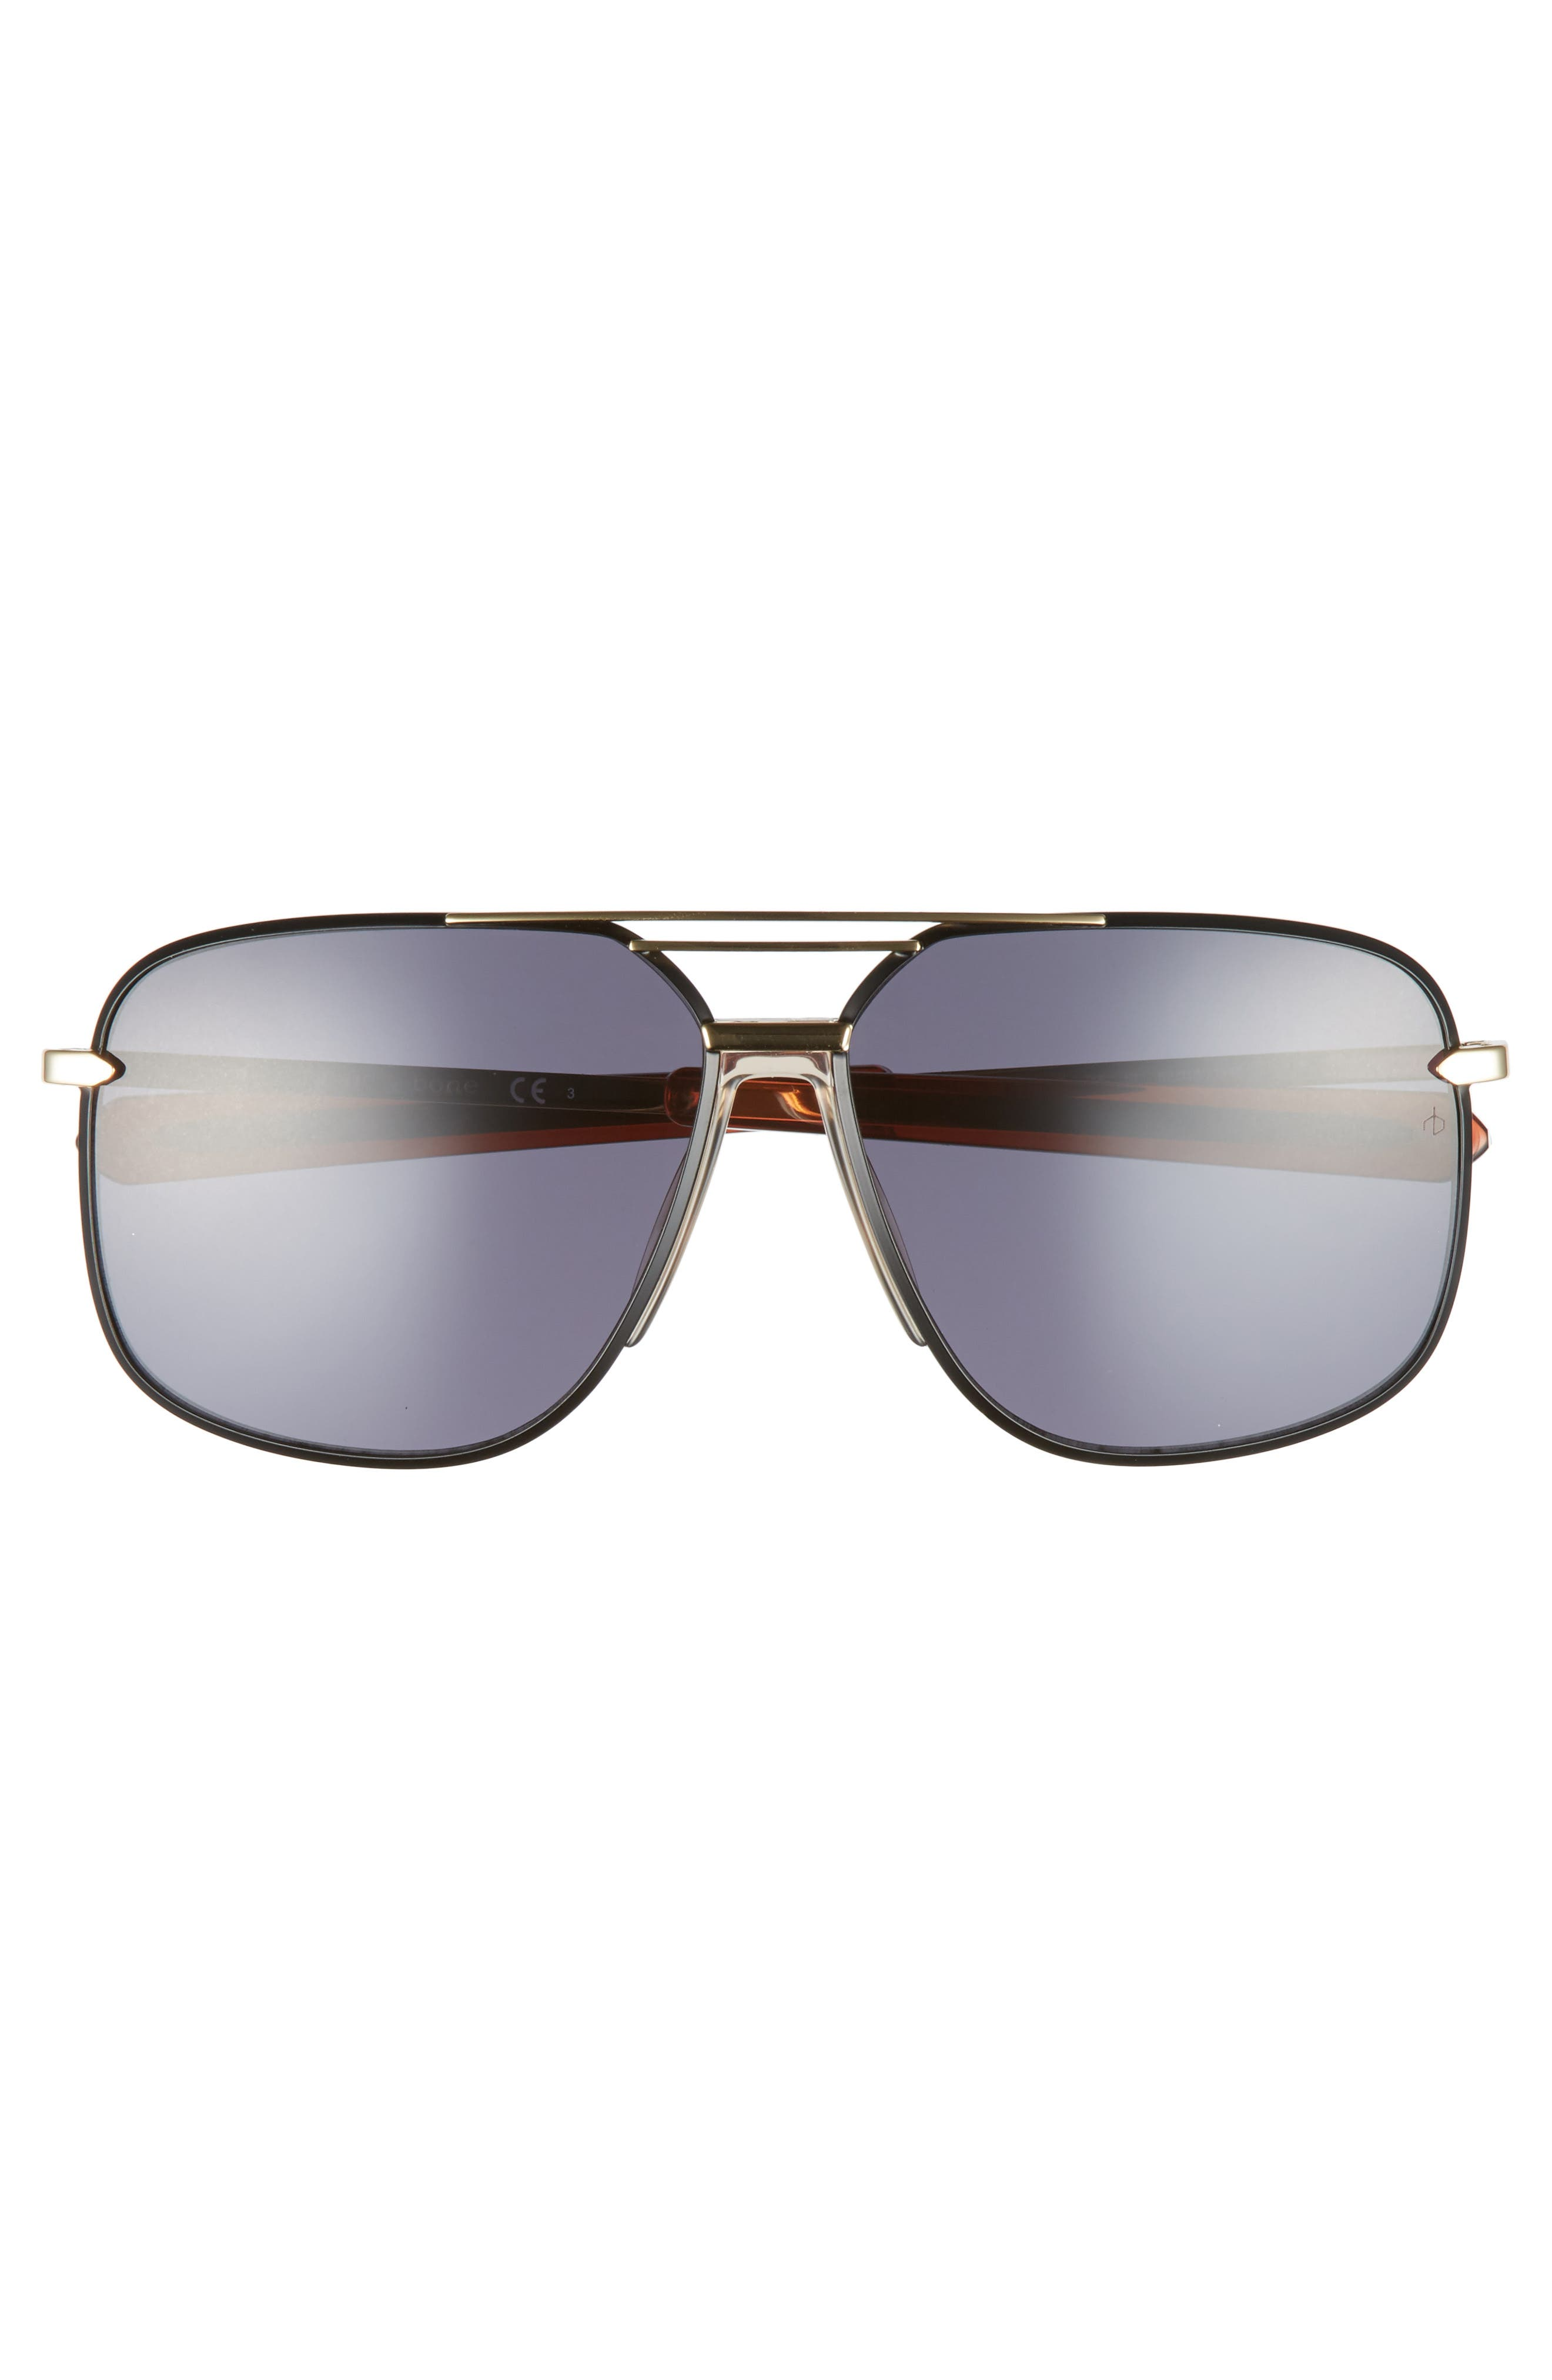 RAG & BONE, Caravan 62mm Oversize Aviator Sunglasses, Alternate thumbnail 3, color, BLACK/ GOLD